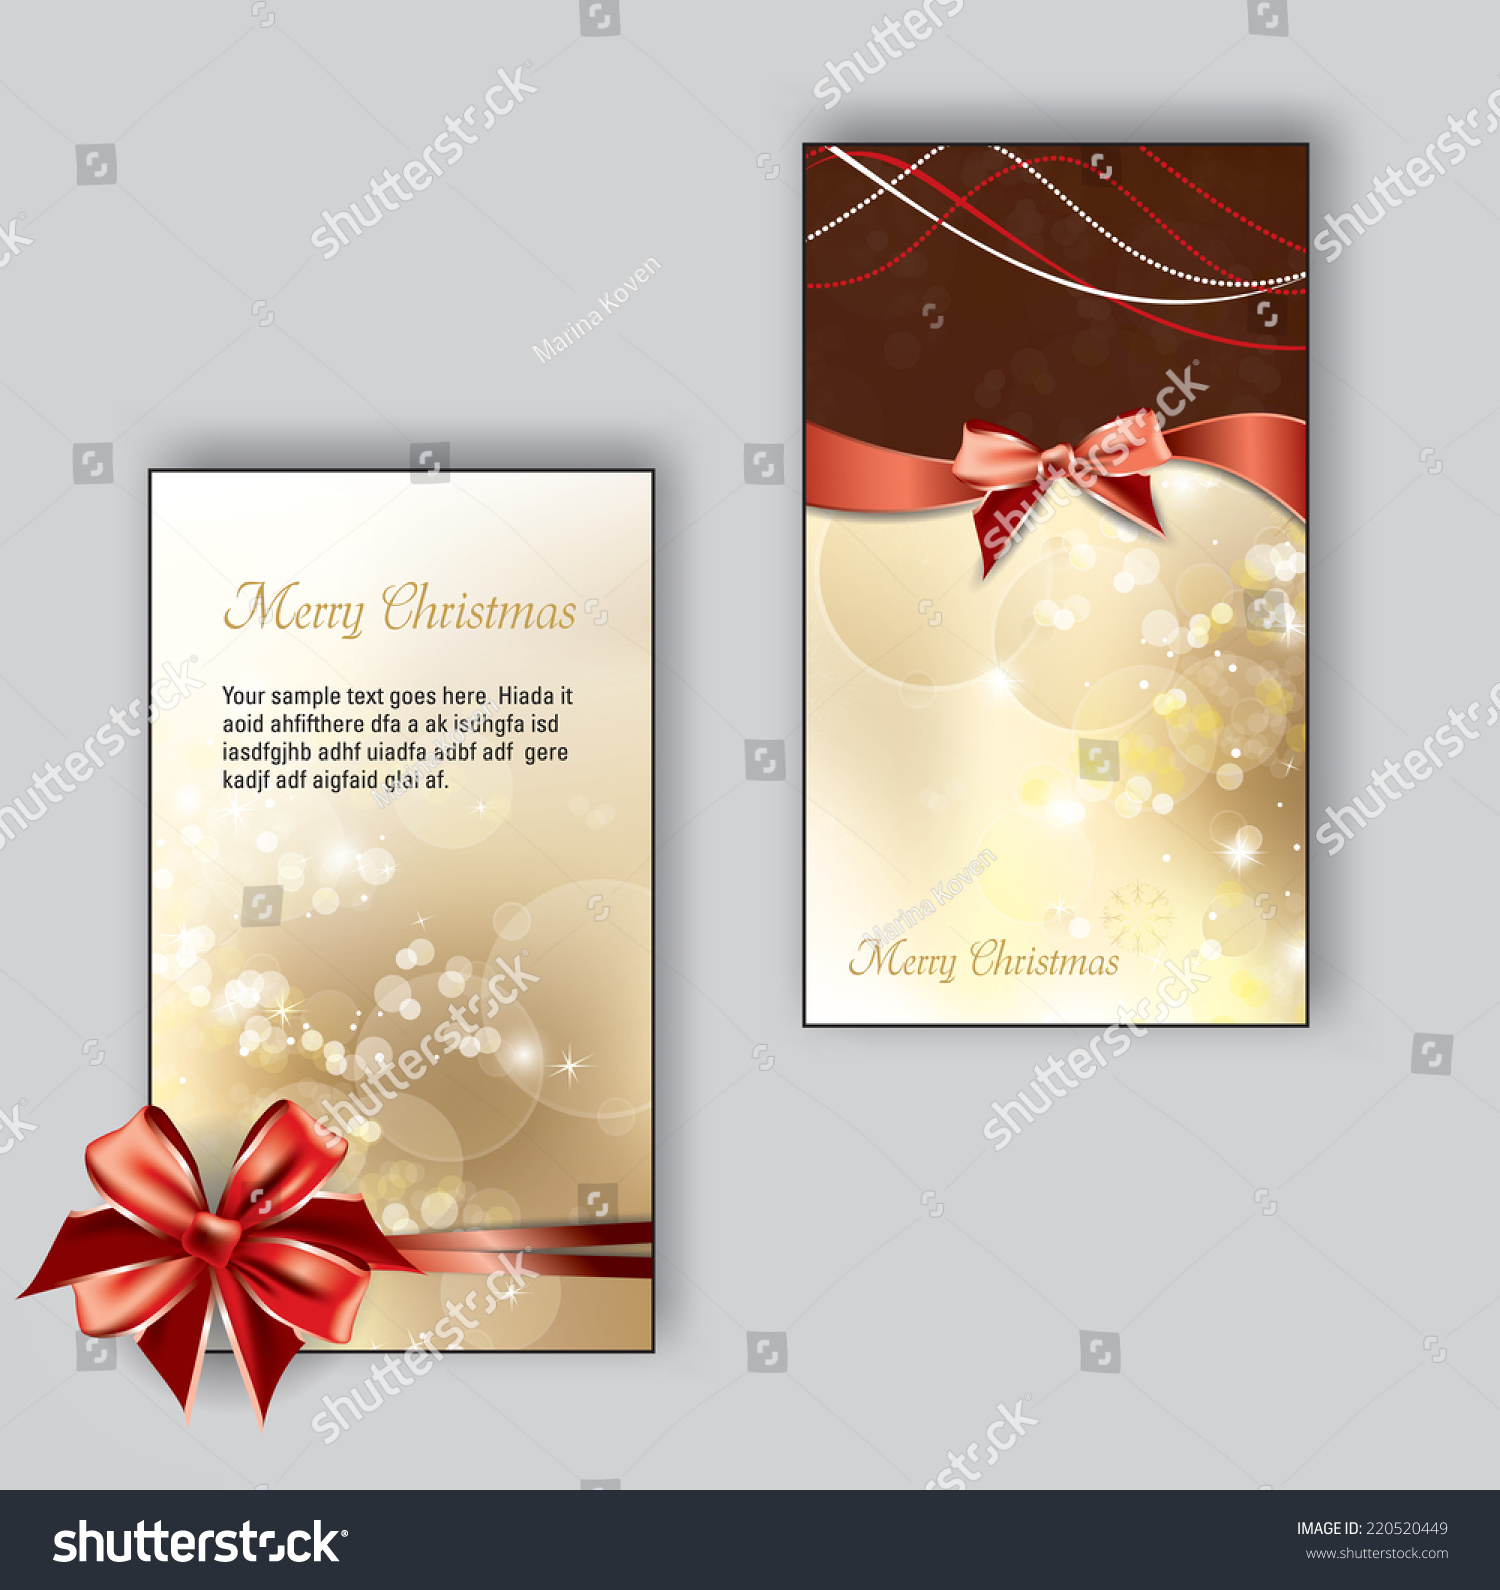 Christmas Greeting Cards Could Be Used For Birthdays Weddings Thank You And